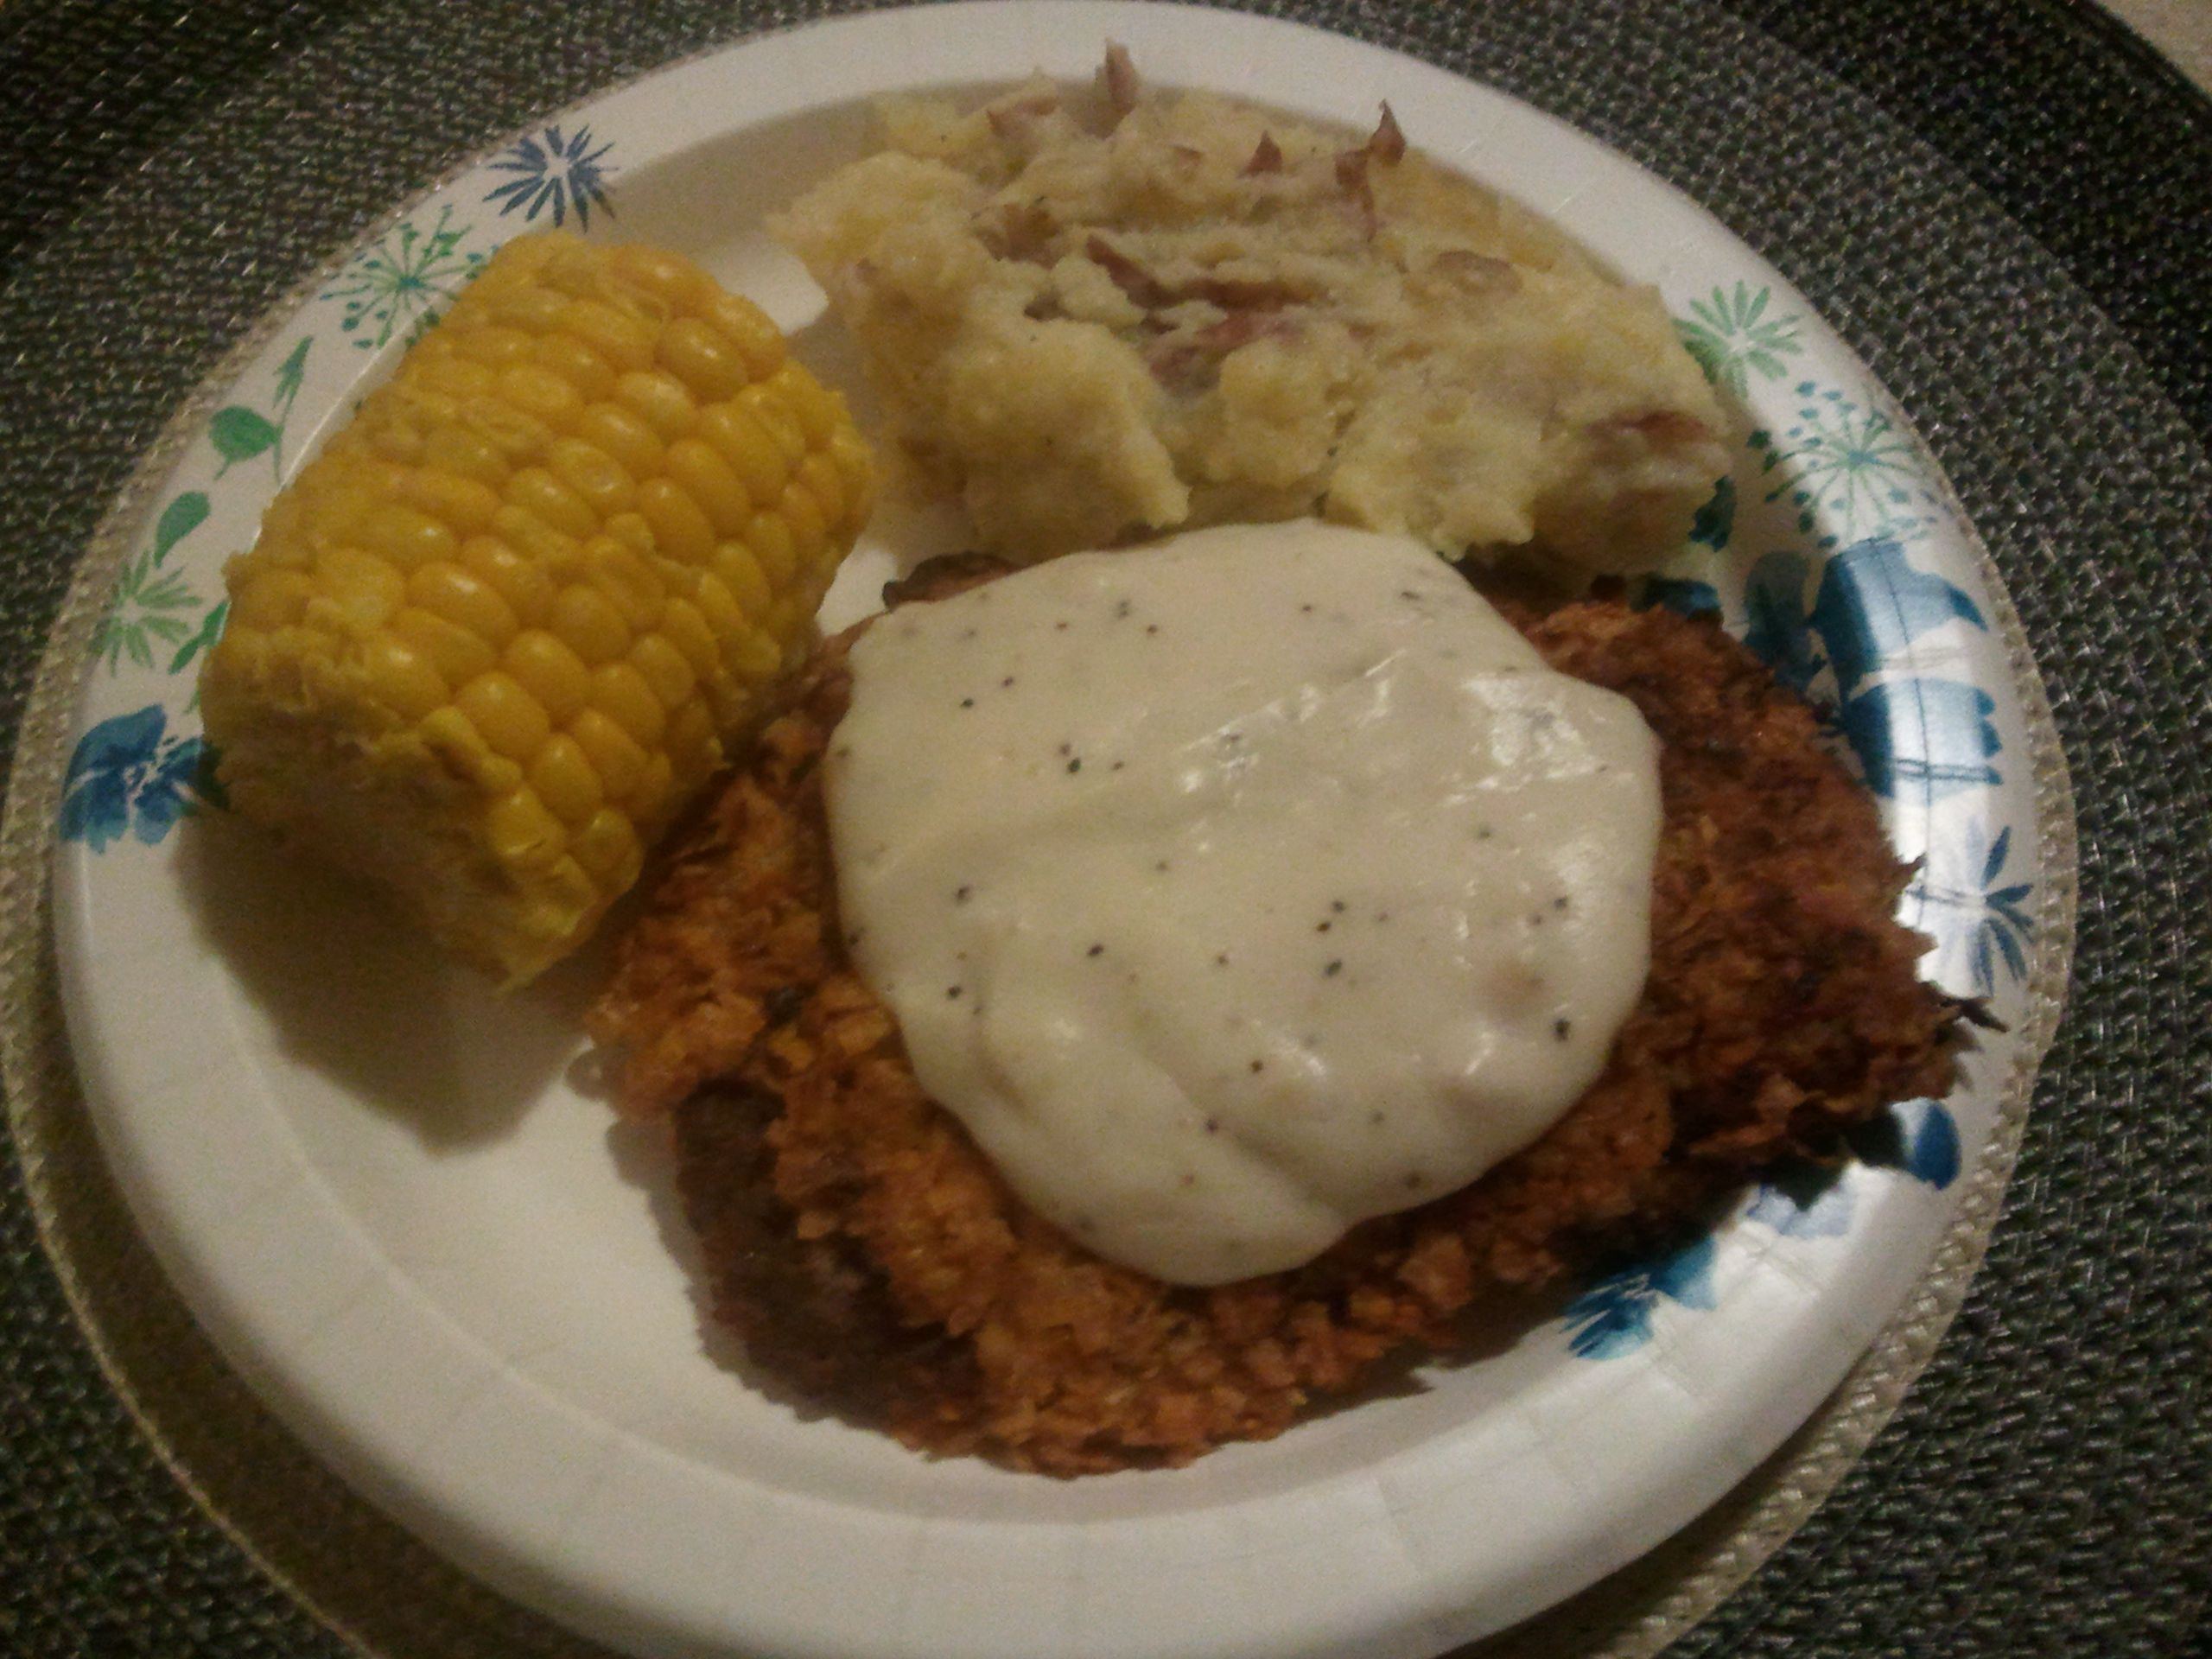 Heathier country fried steak with homemade mash potatoes